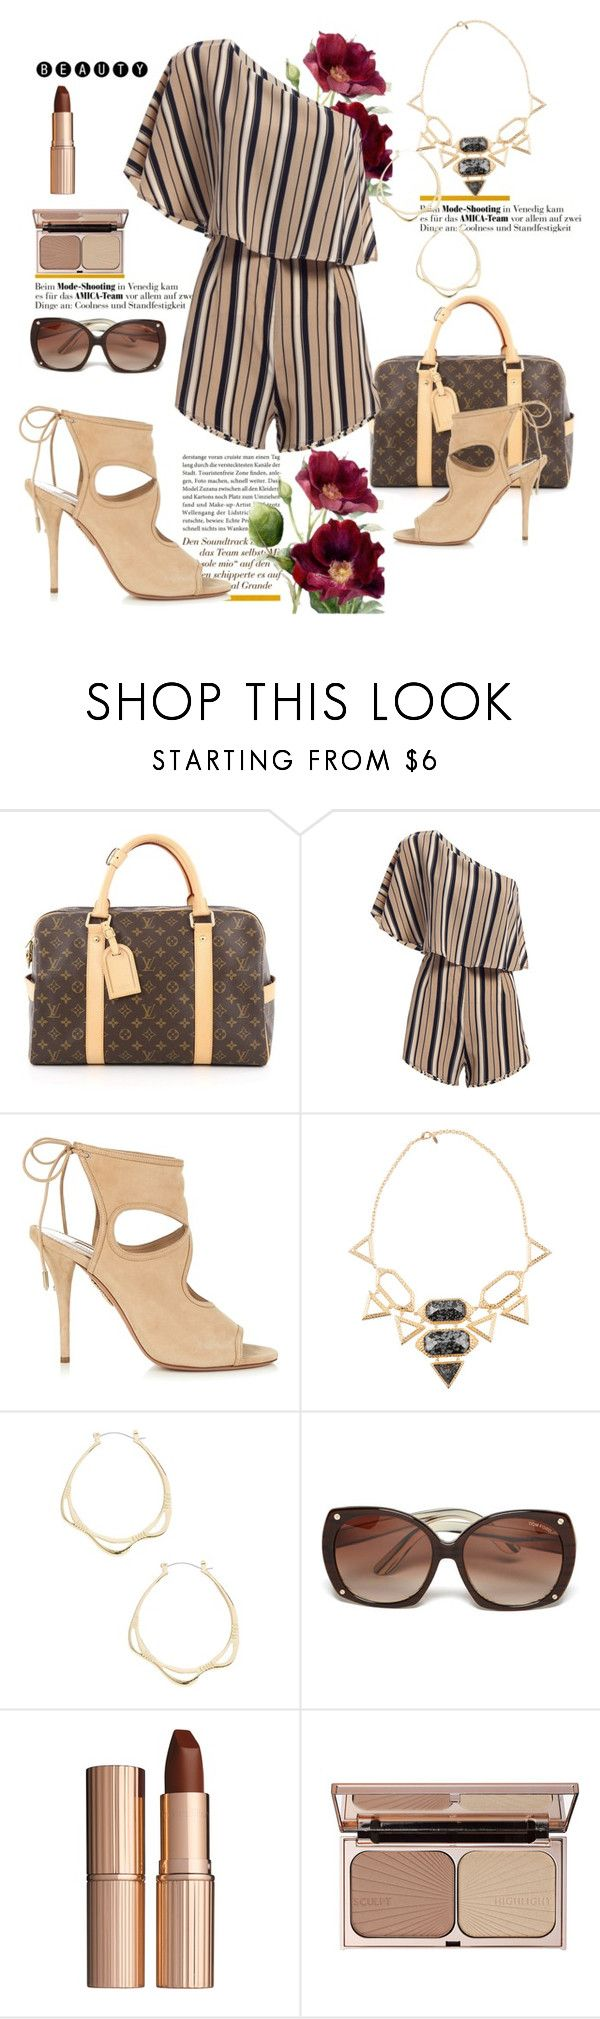 """""""Romper.."""" by csfshawn on Polyvore featuring Louis Vuitton, Aquazzura, Isharya, Tom Ford and Charlotte Tilbury"""